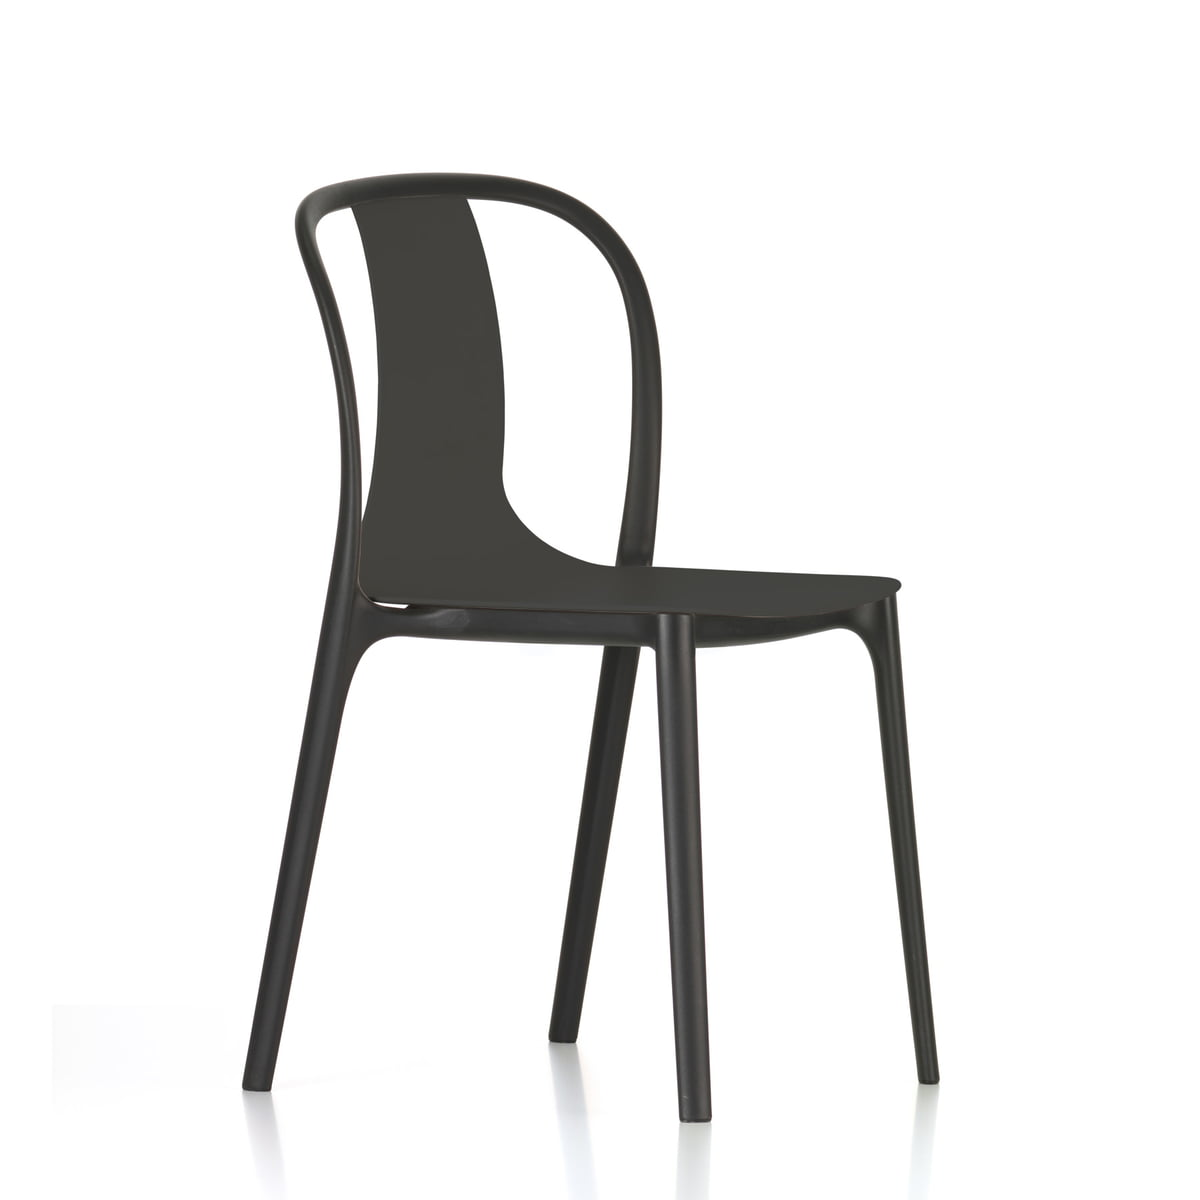 belleville chair plastic von vitra im shop. Black Bedroom Furniture Sets. Home Design Ideas